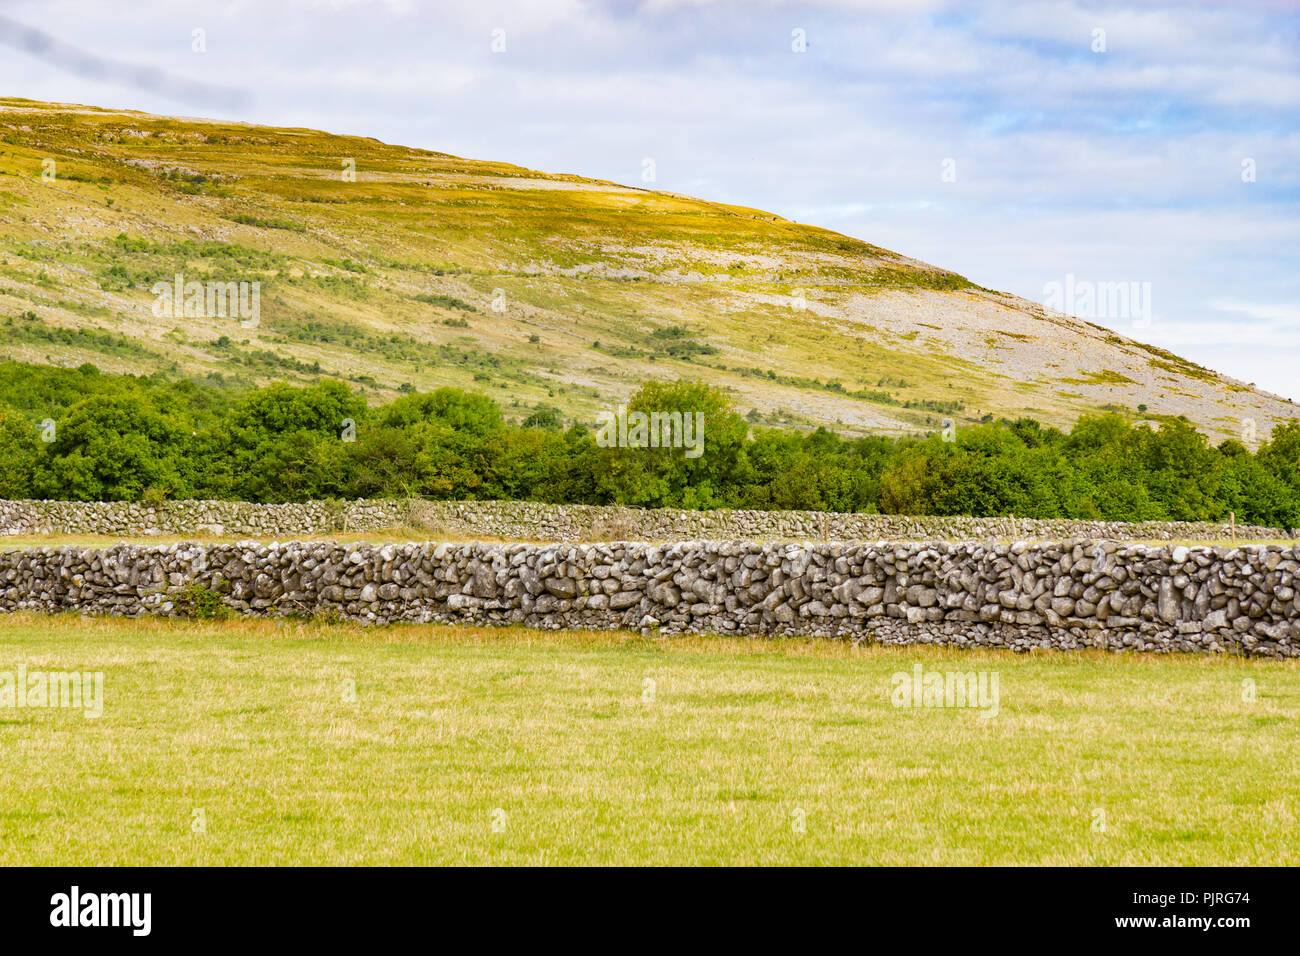 Stone walls with Mountain and vegetation in Ballyvaughan, Ireland - Stock Image